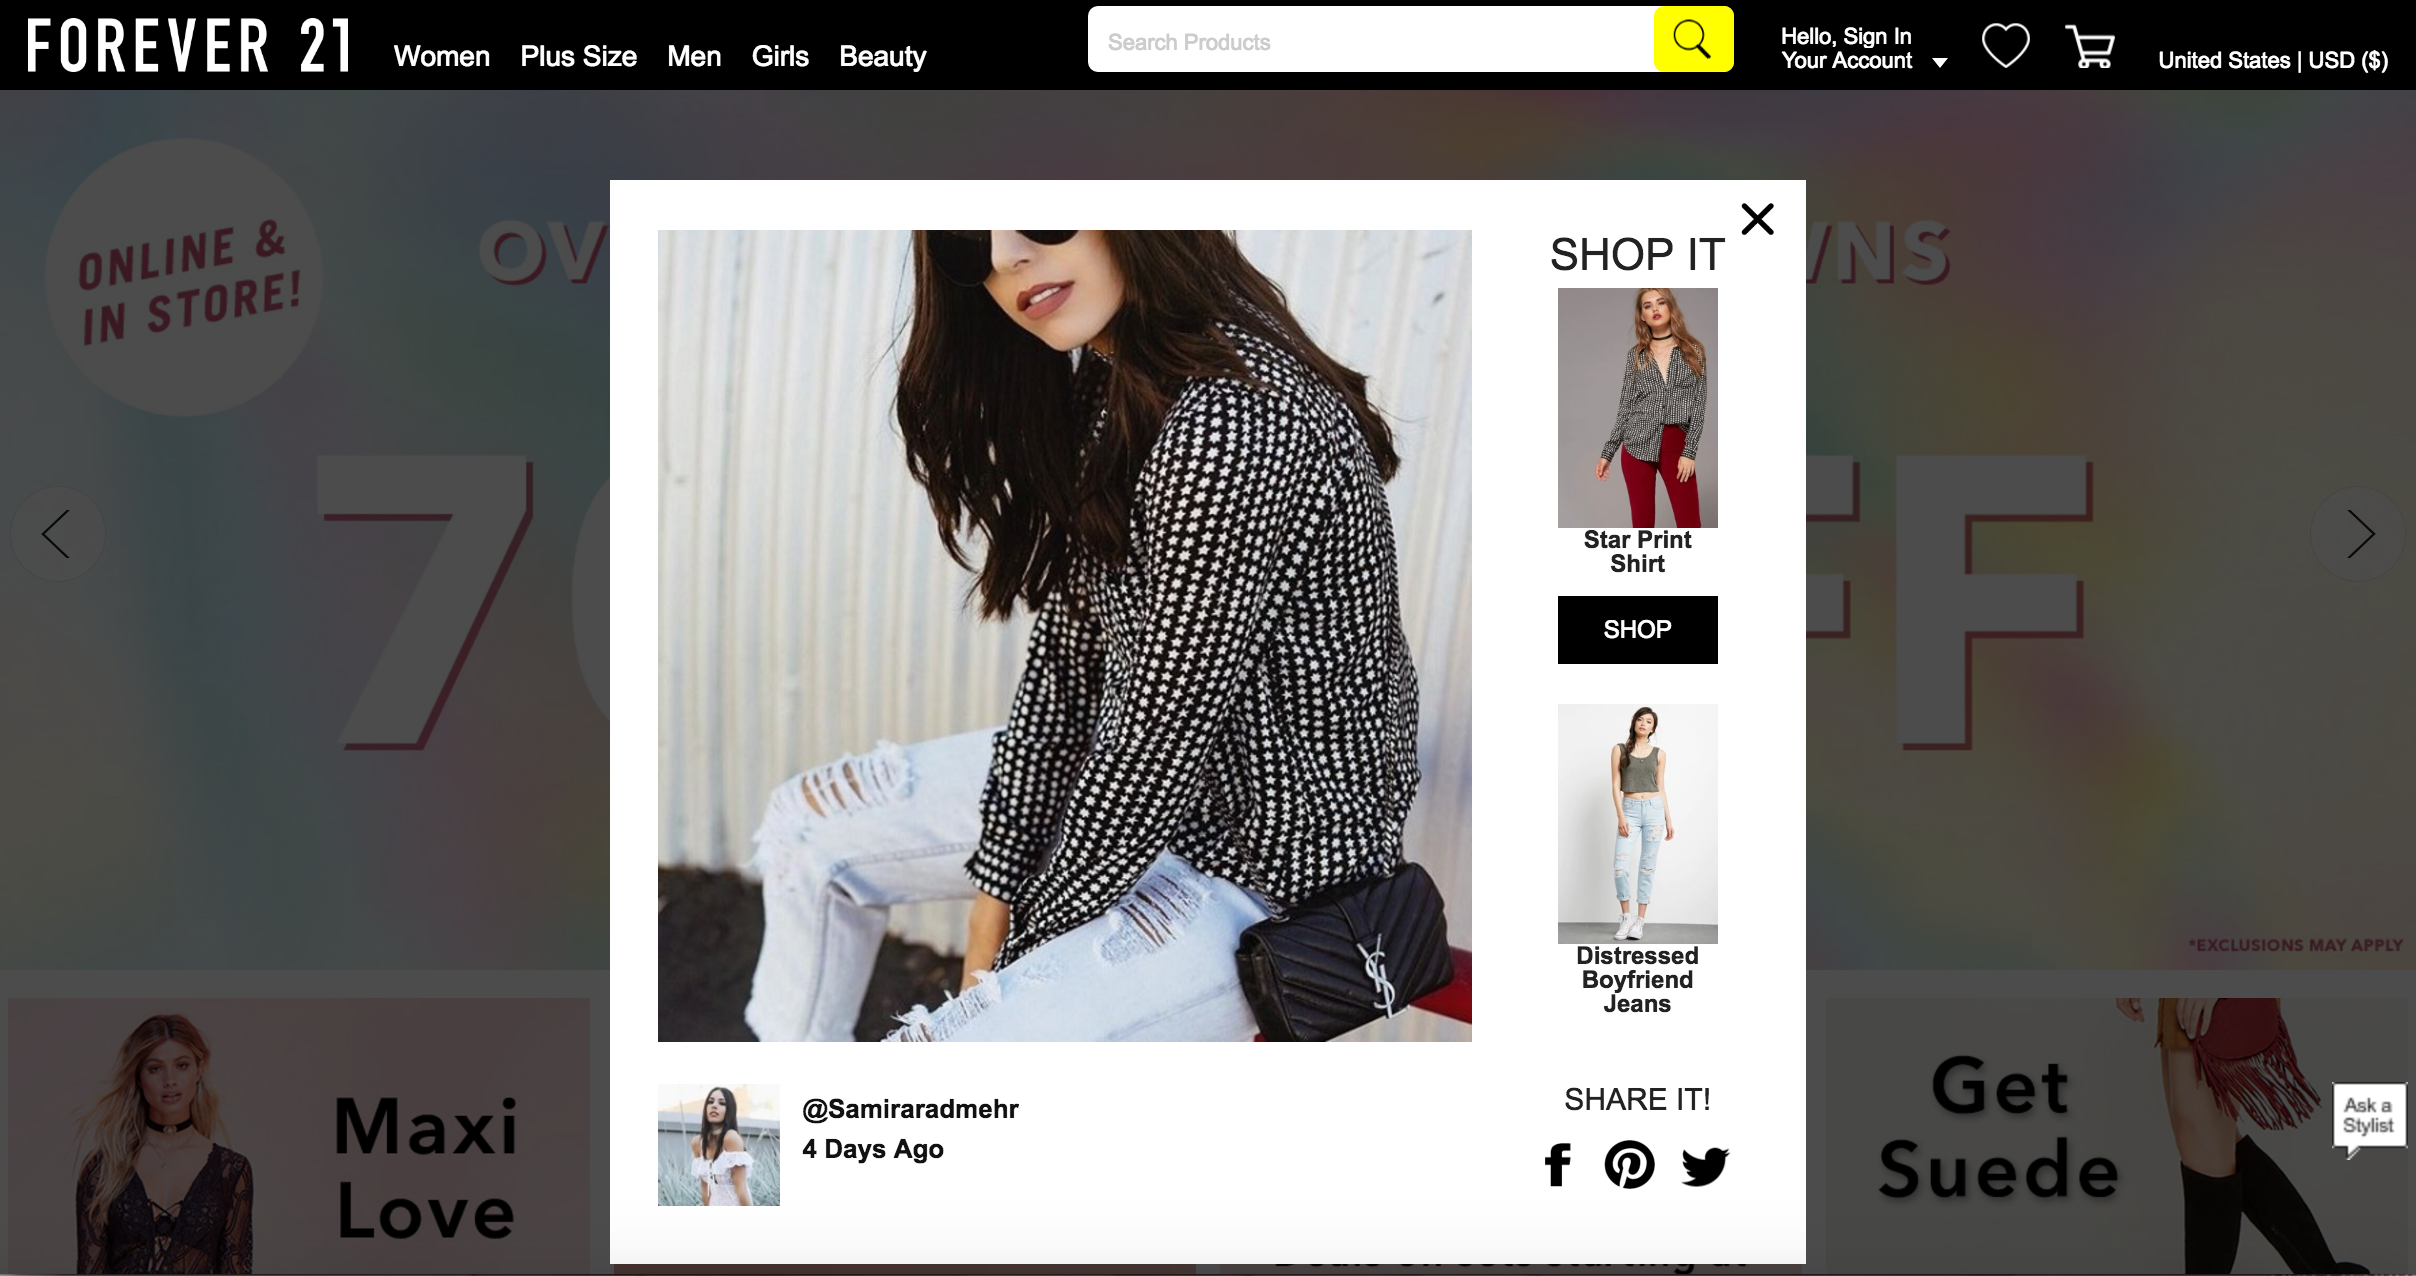 Featured on Forever 21 Homepage